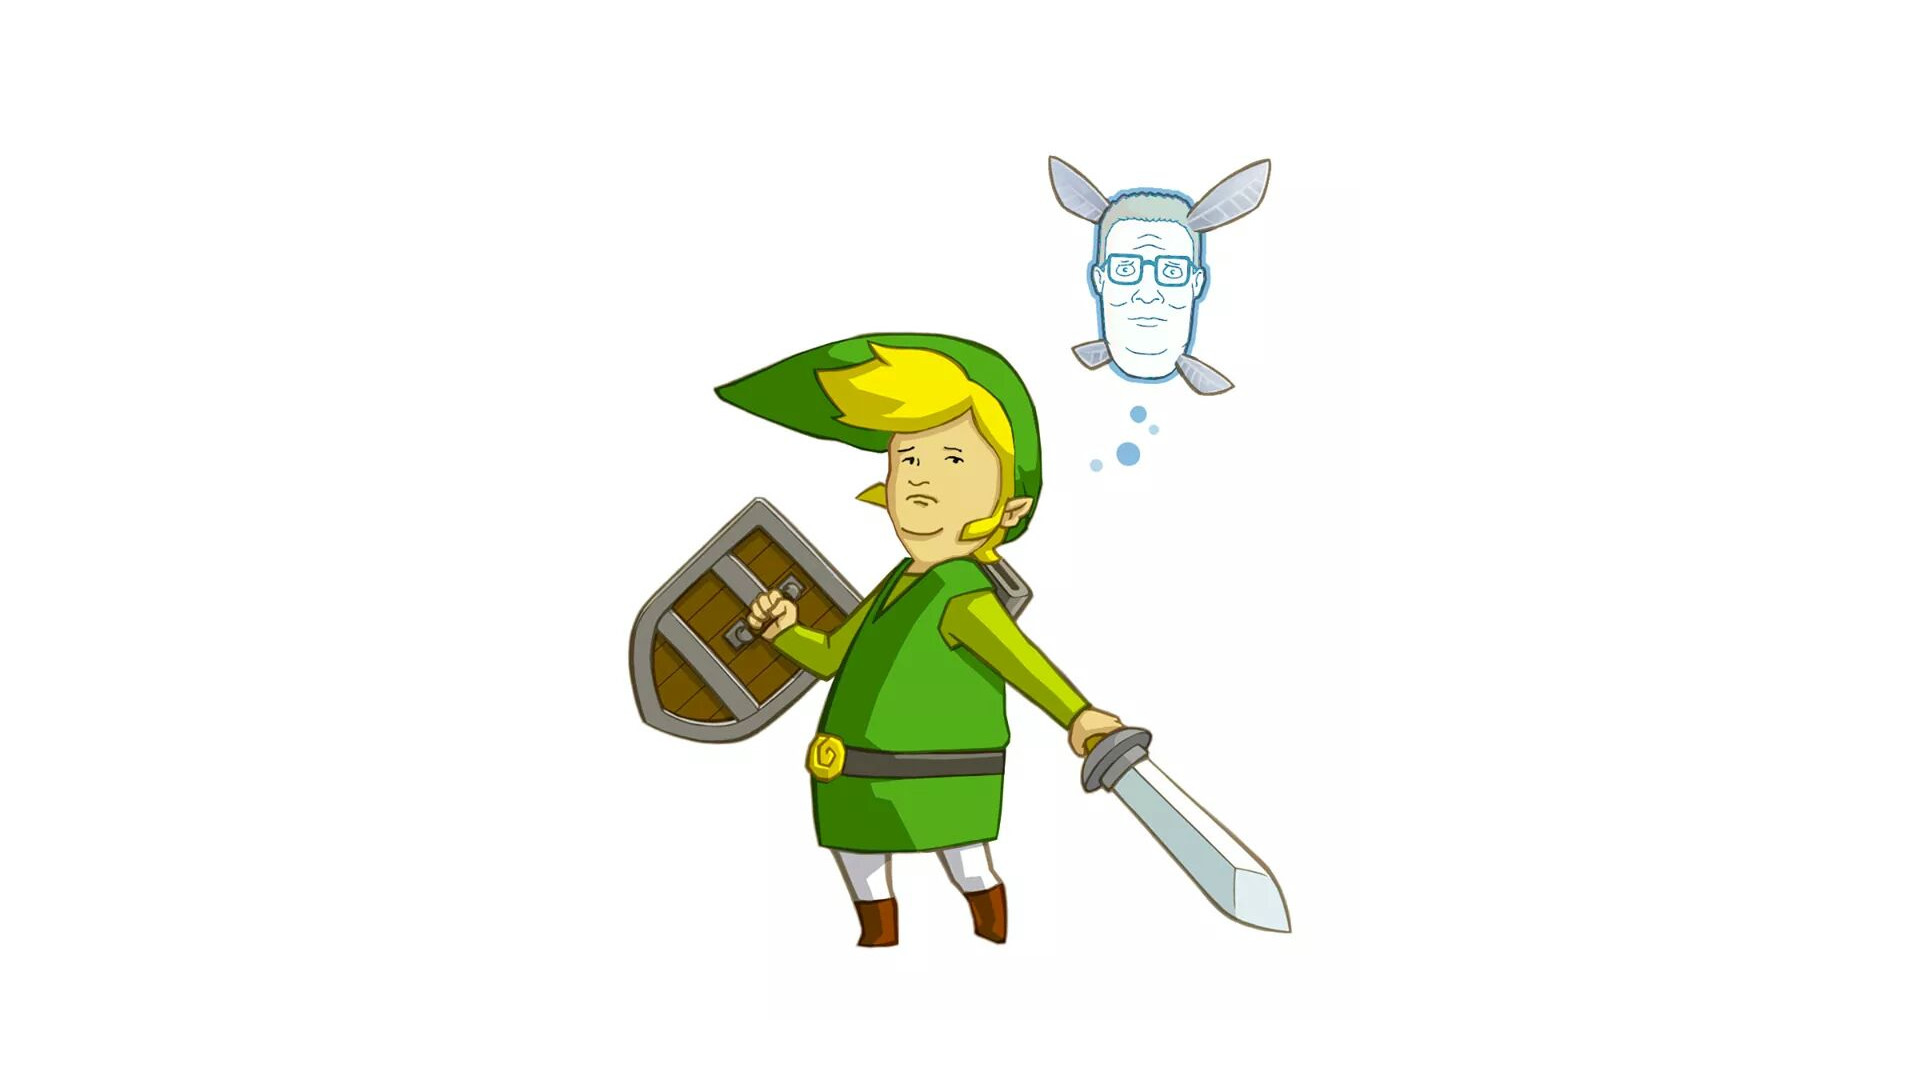 General crossover humor King of the Hill The Legend of Zelda